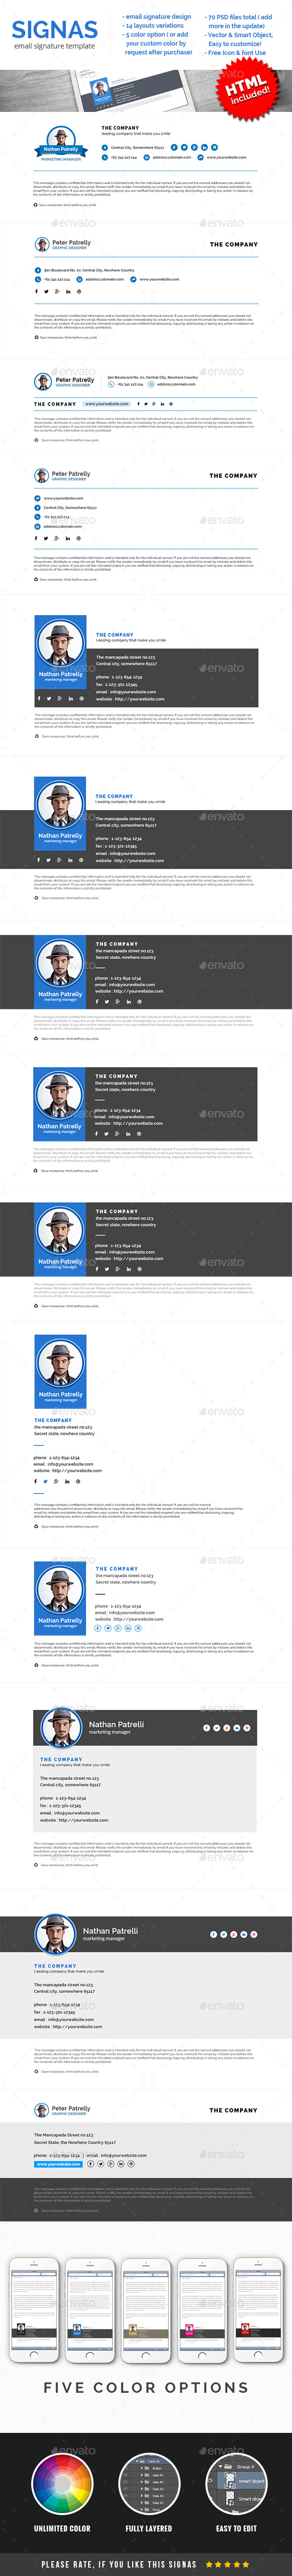 Signas Vol.02 - Email Signature Template